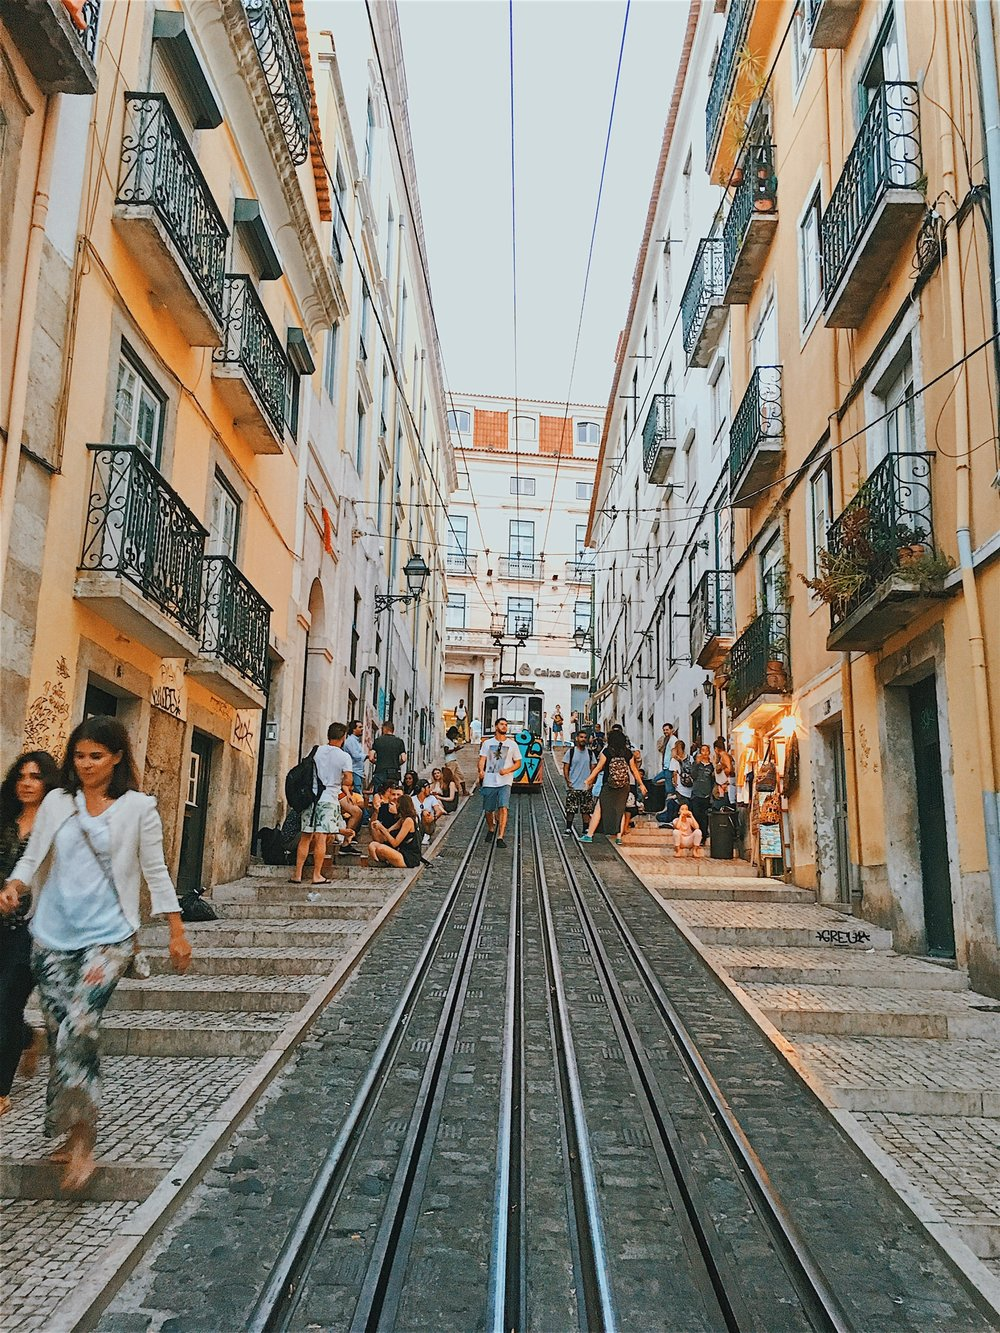 """Looking up the """"party hill"""" from about a quarter of the way down; our apartment was at the top of the last building on the right. You can see people beginning to congregate for the nighttime revelry (it doesn't get dark in Lisbon during the summer until past 9pm)"""